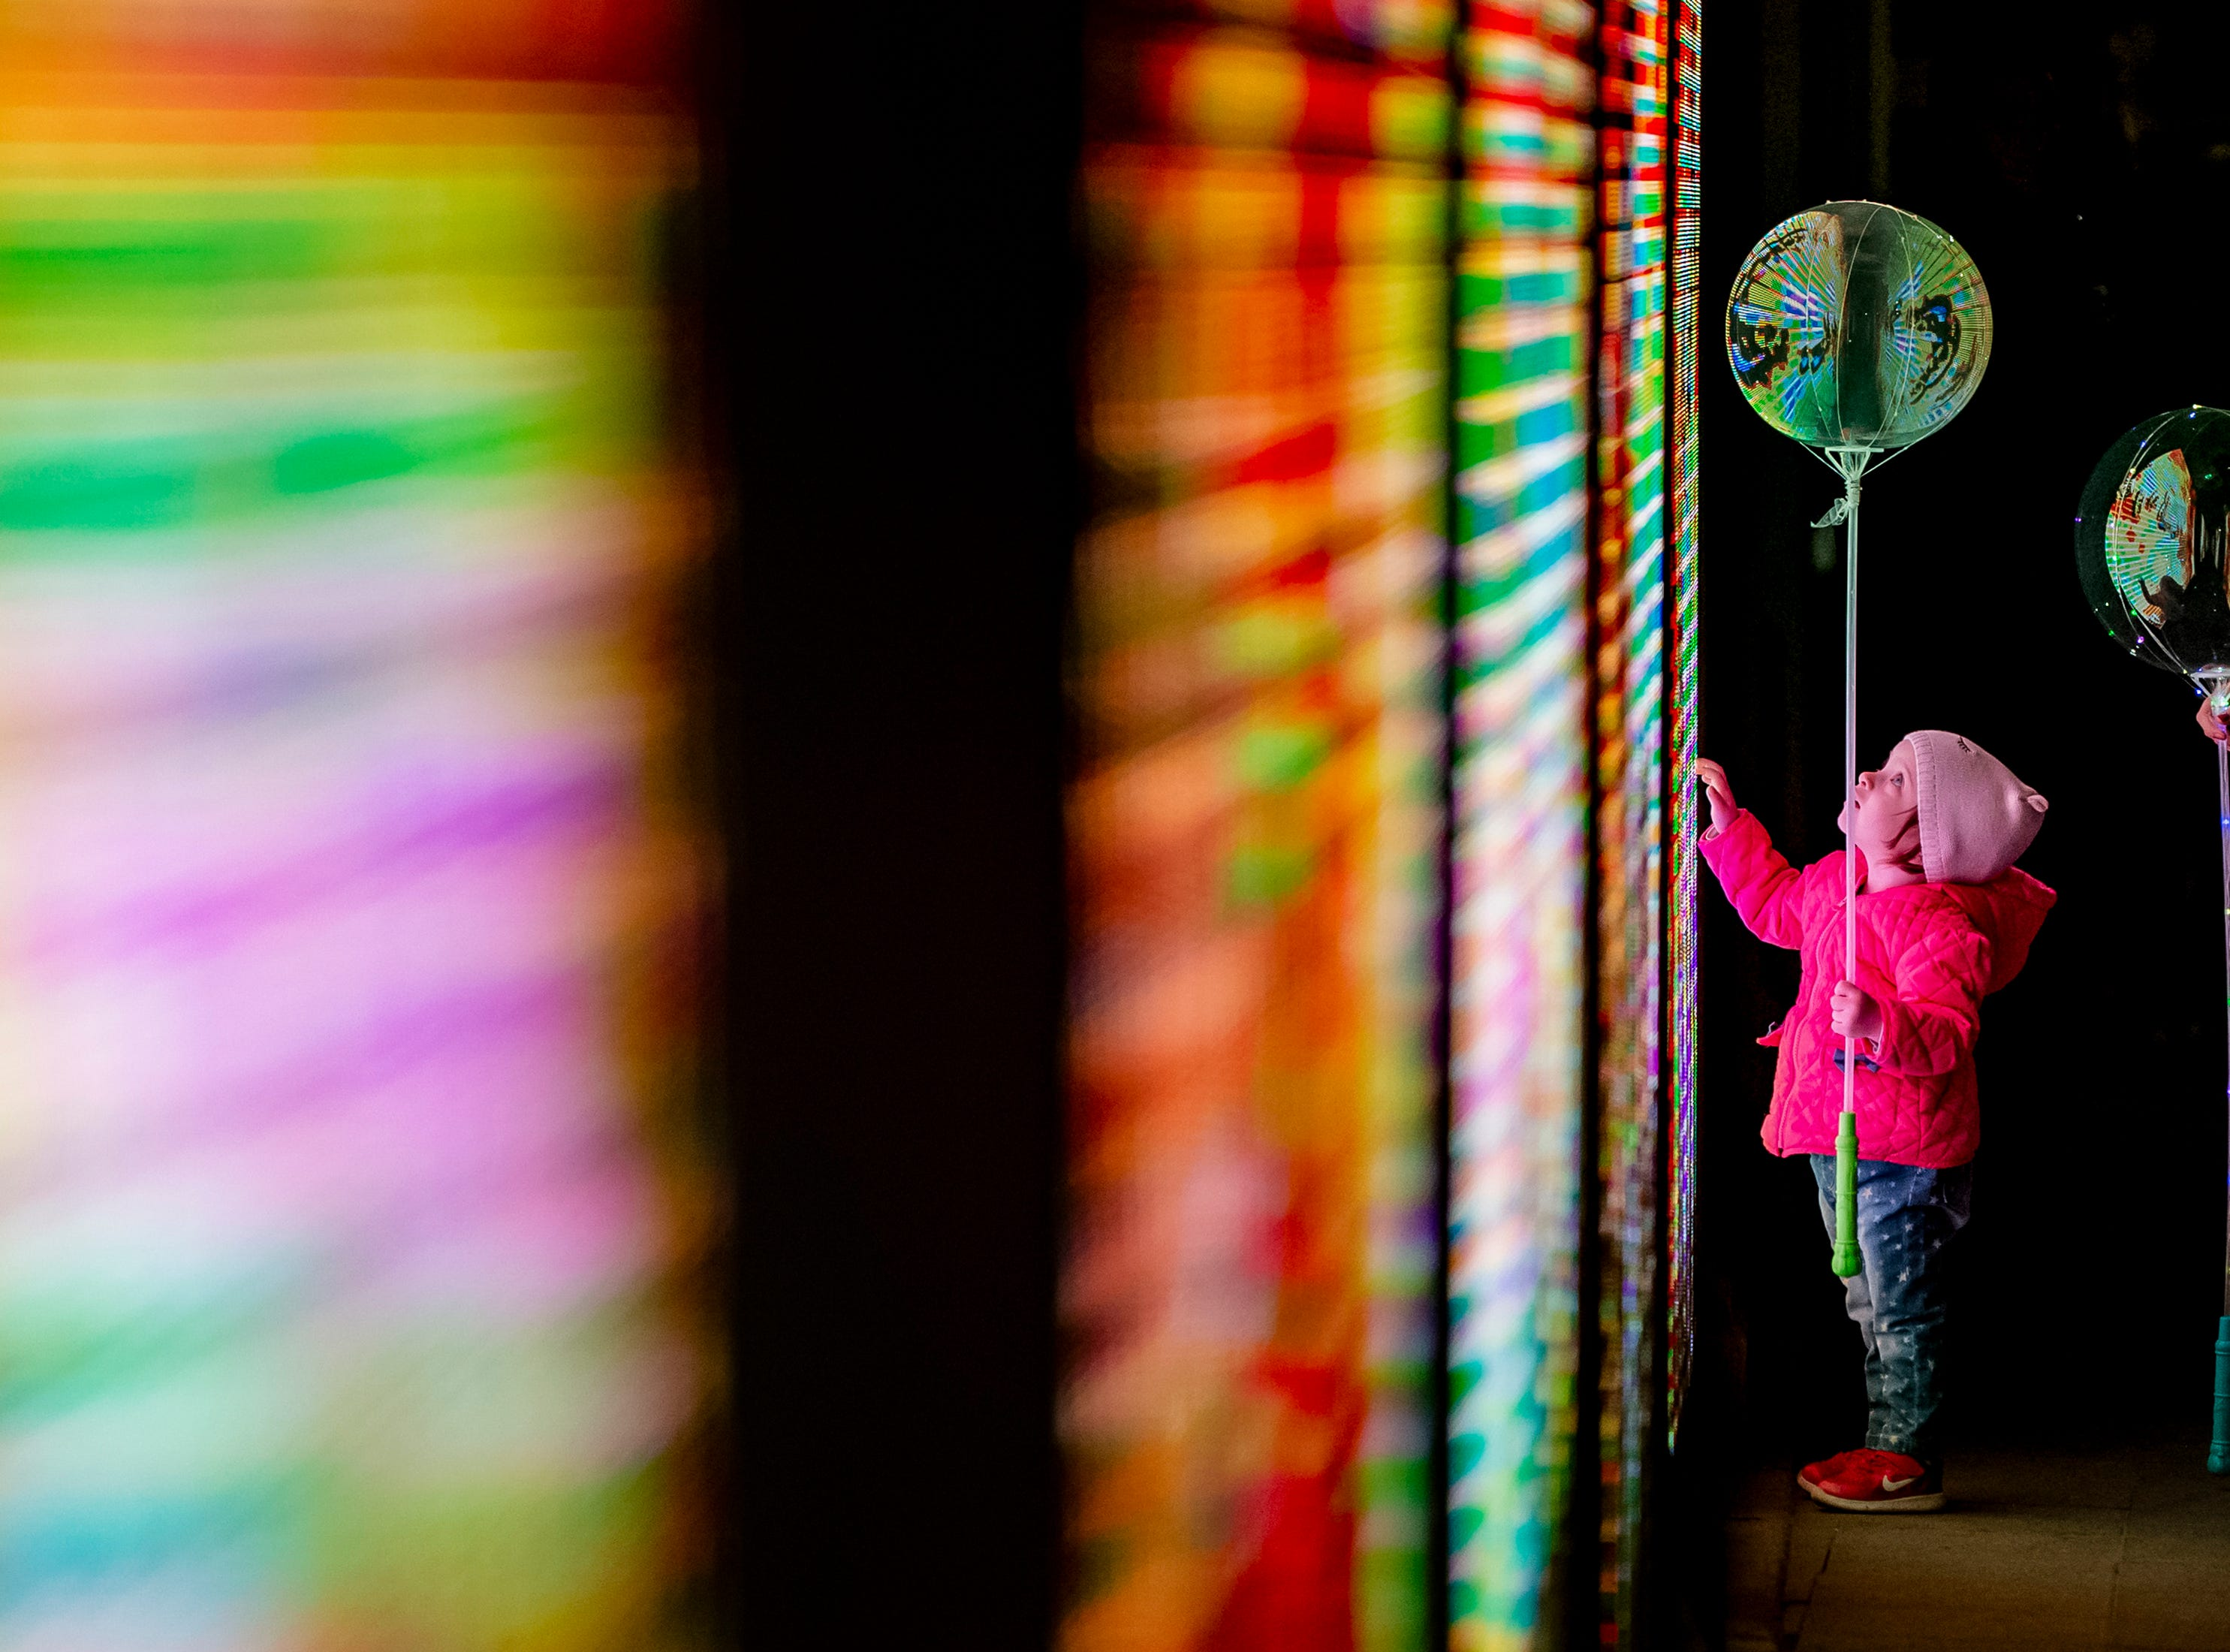 A girl holding a ballon touches an LED panel part of an light installation during Spotlight International Light Show, in Bucharest, Romania, Saturday, April 20, 2019. The international light festival includes light and digital art installations created by local and international artists and runs under the theme EuropeLights marking the Romanian Presidency of the Council of the European Union.